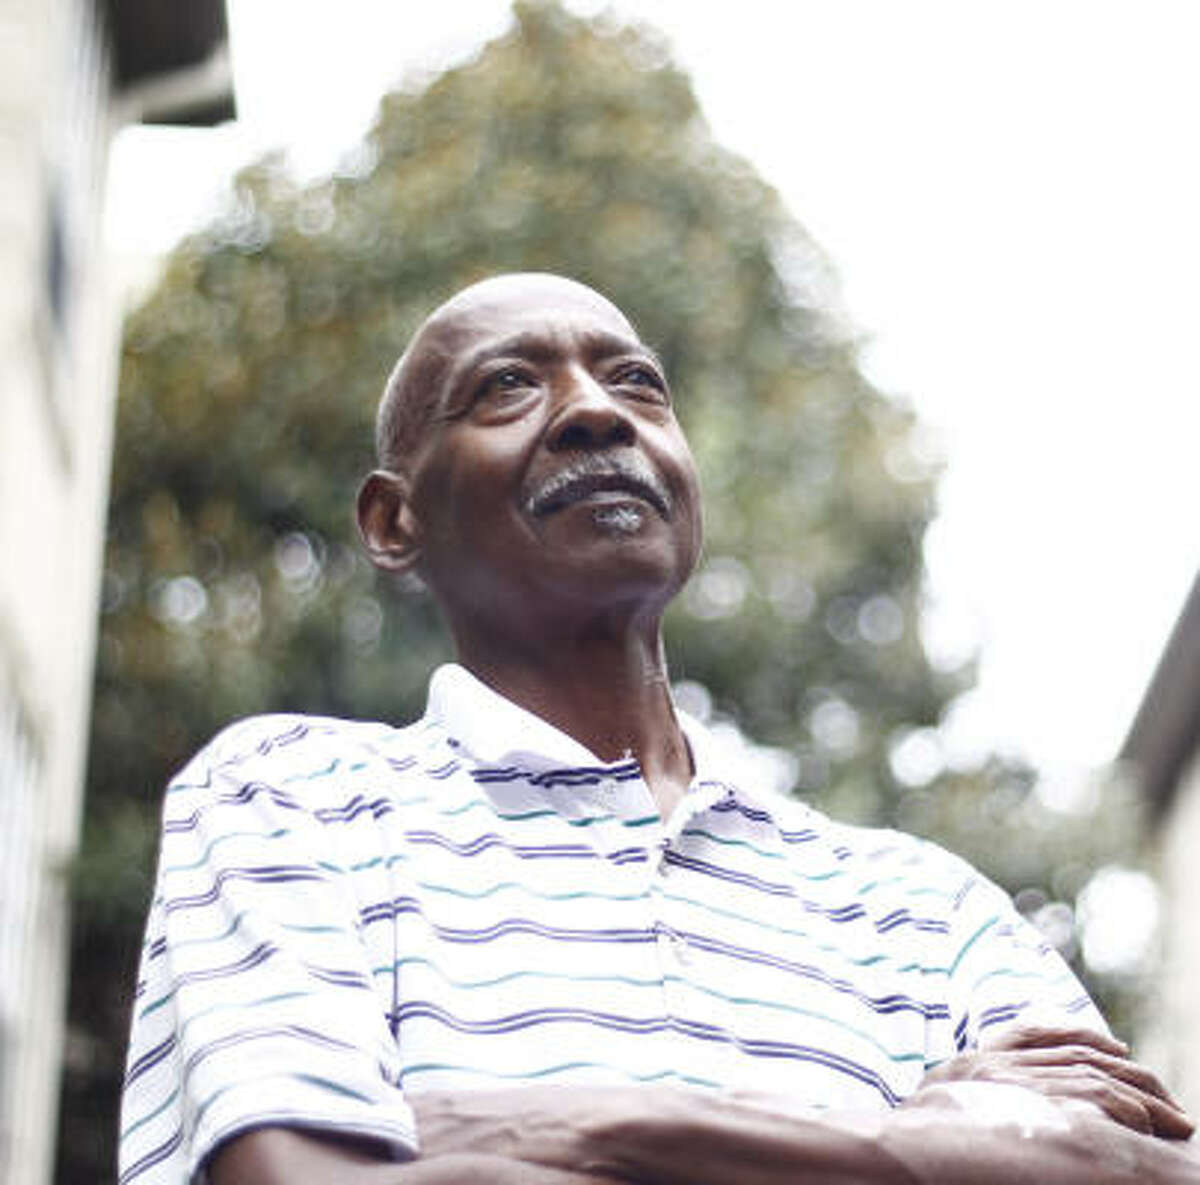 Wayne Alexander, 61, of Houston, says unfair treatment by the U.S. Department of Agriculture led to the loss of his farm in Needville. He and his wife now live in a Midtown apartment.